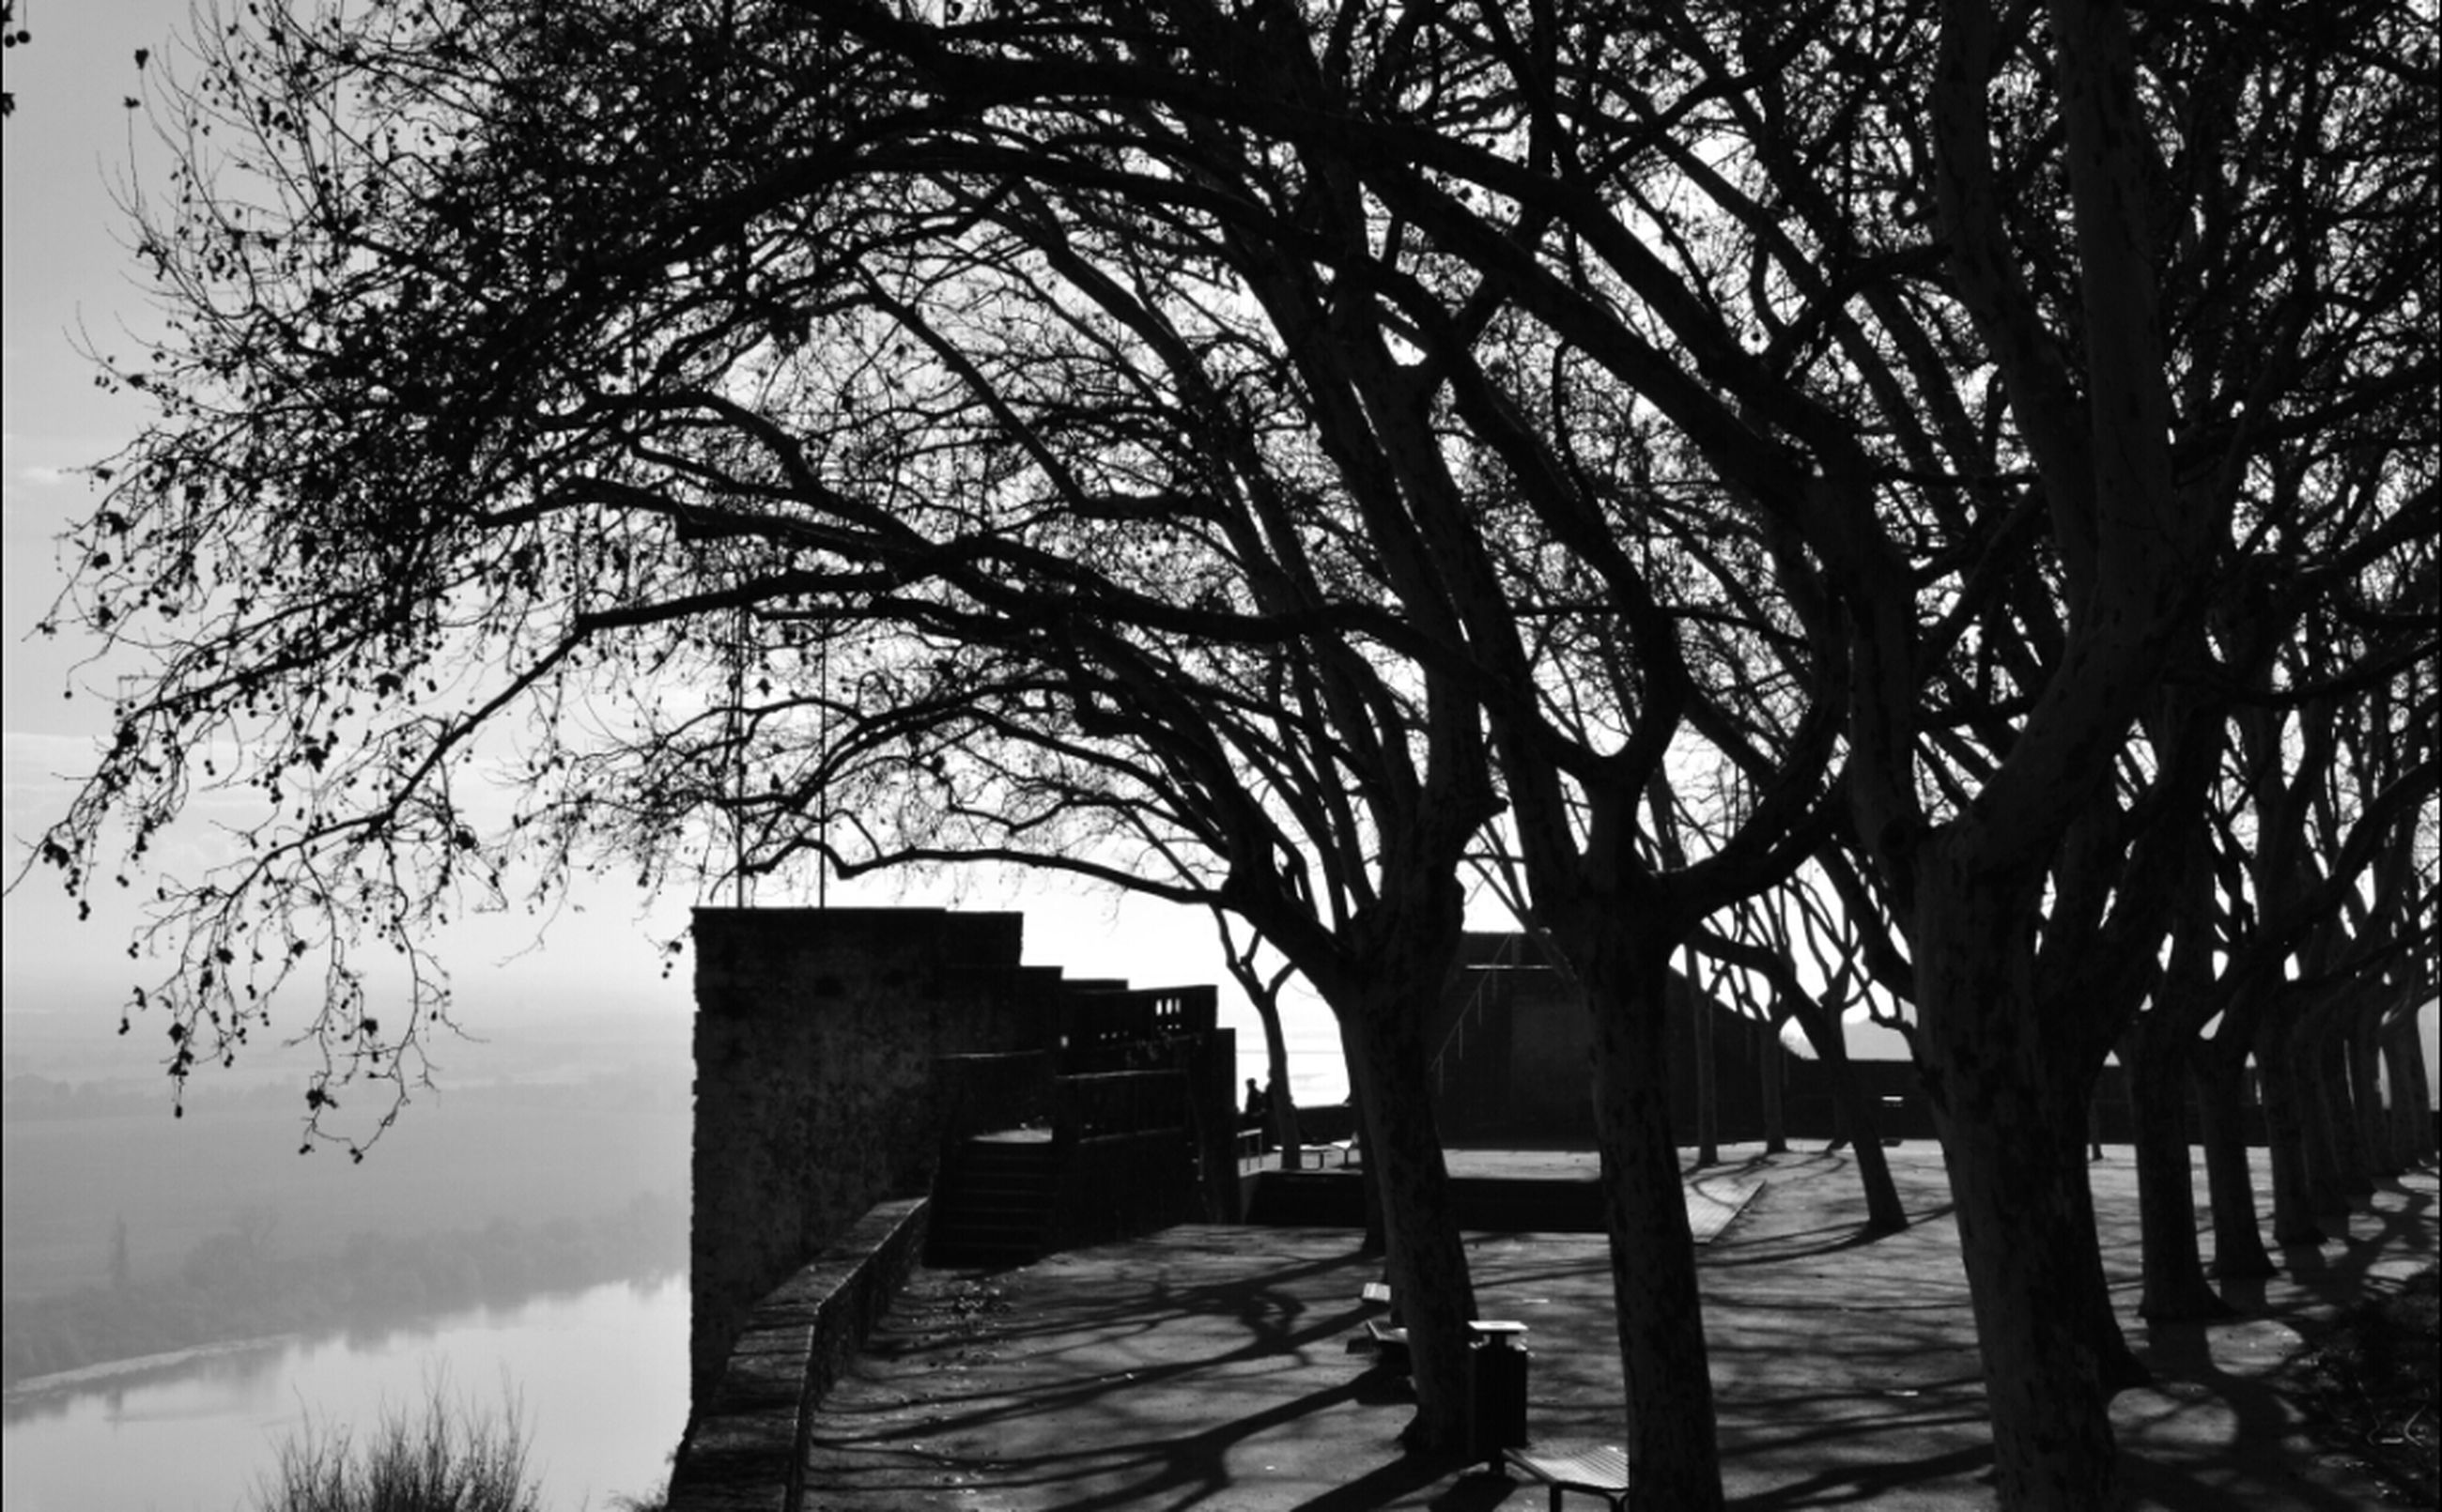 tree, water, tranquility, bare tree, tranquil scene, silhouette, nature, sunset, scenics, built structure, branch, wood - material, beauty in nature, bench, lake, sunlight, sky, empty, the way forward, absence